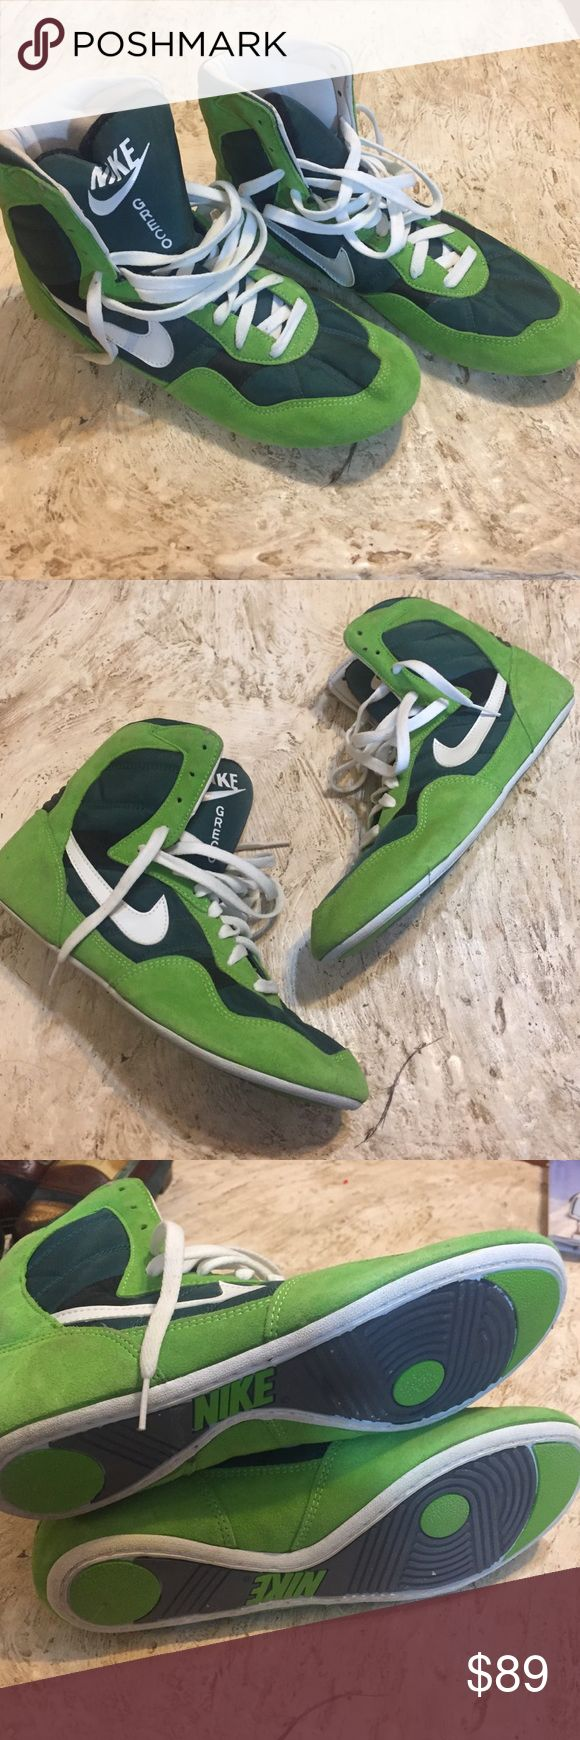 🎈NWOT Nike Greco Wrestling Shoes. Size 10 🎈NWOT Nike Greco Wrestling Shoes. Size 10.  Brand new. No box. Green suede and nylon high top wrestling shoes. Nike Shoes Athletic Shoes